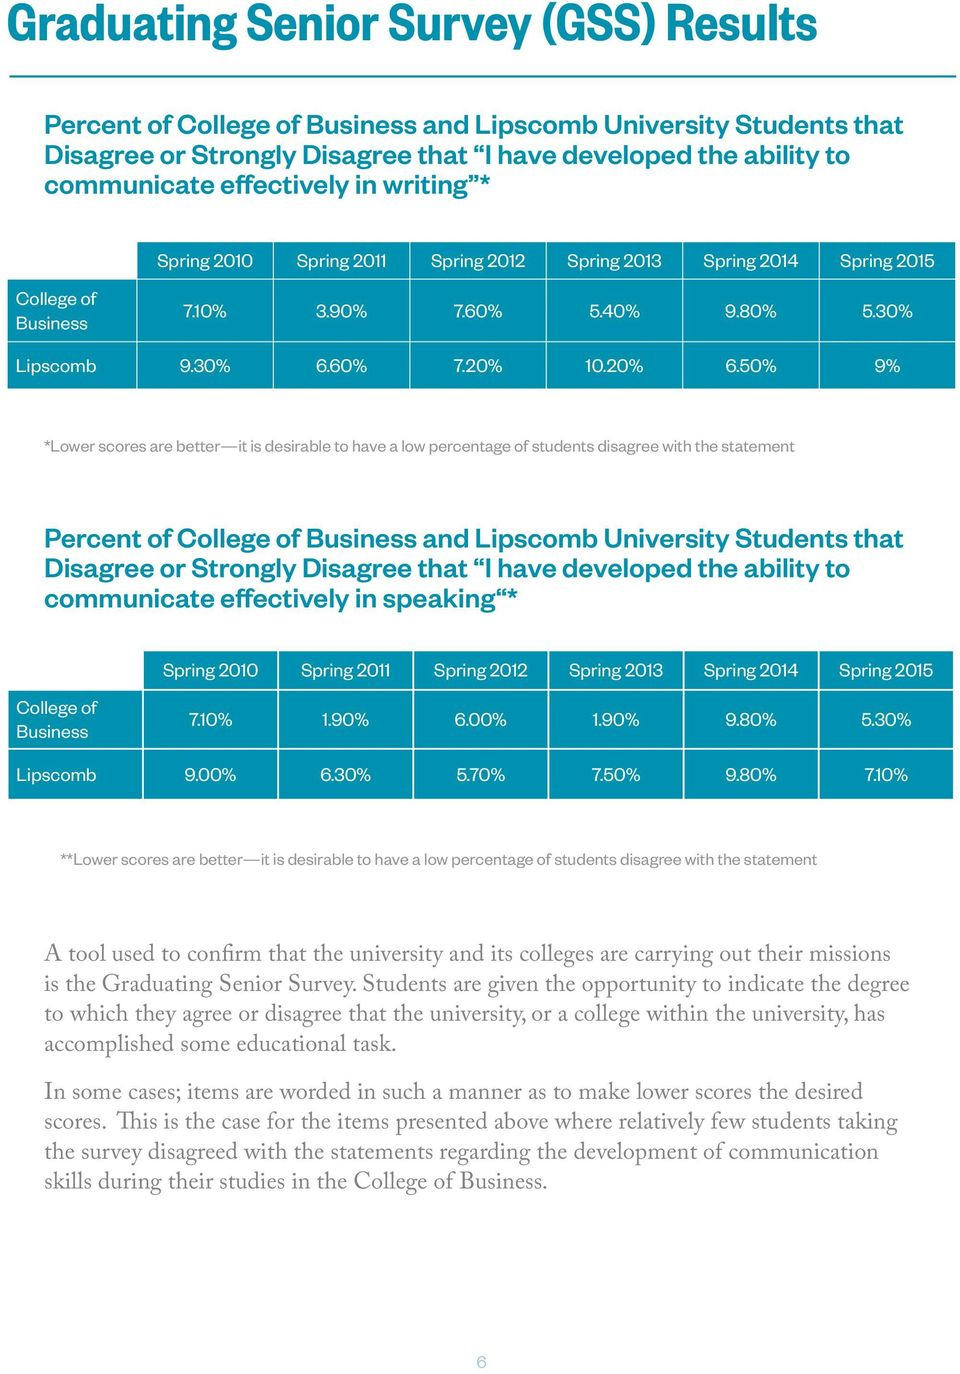 50% 9% *Lower scores are better it is desirable to have a low percentage of students disagree with the statement Percent of College of Business and Lipscomb University Students that Disagree or